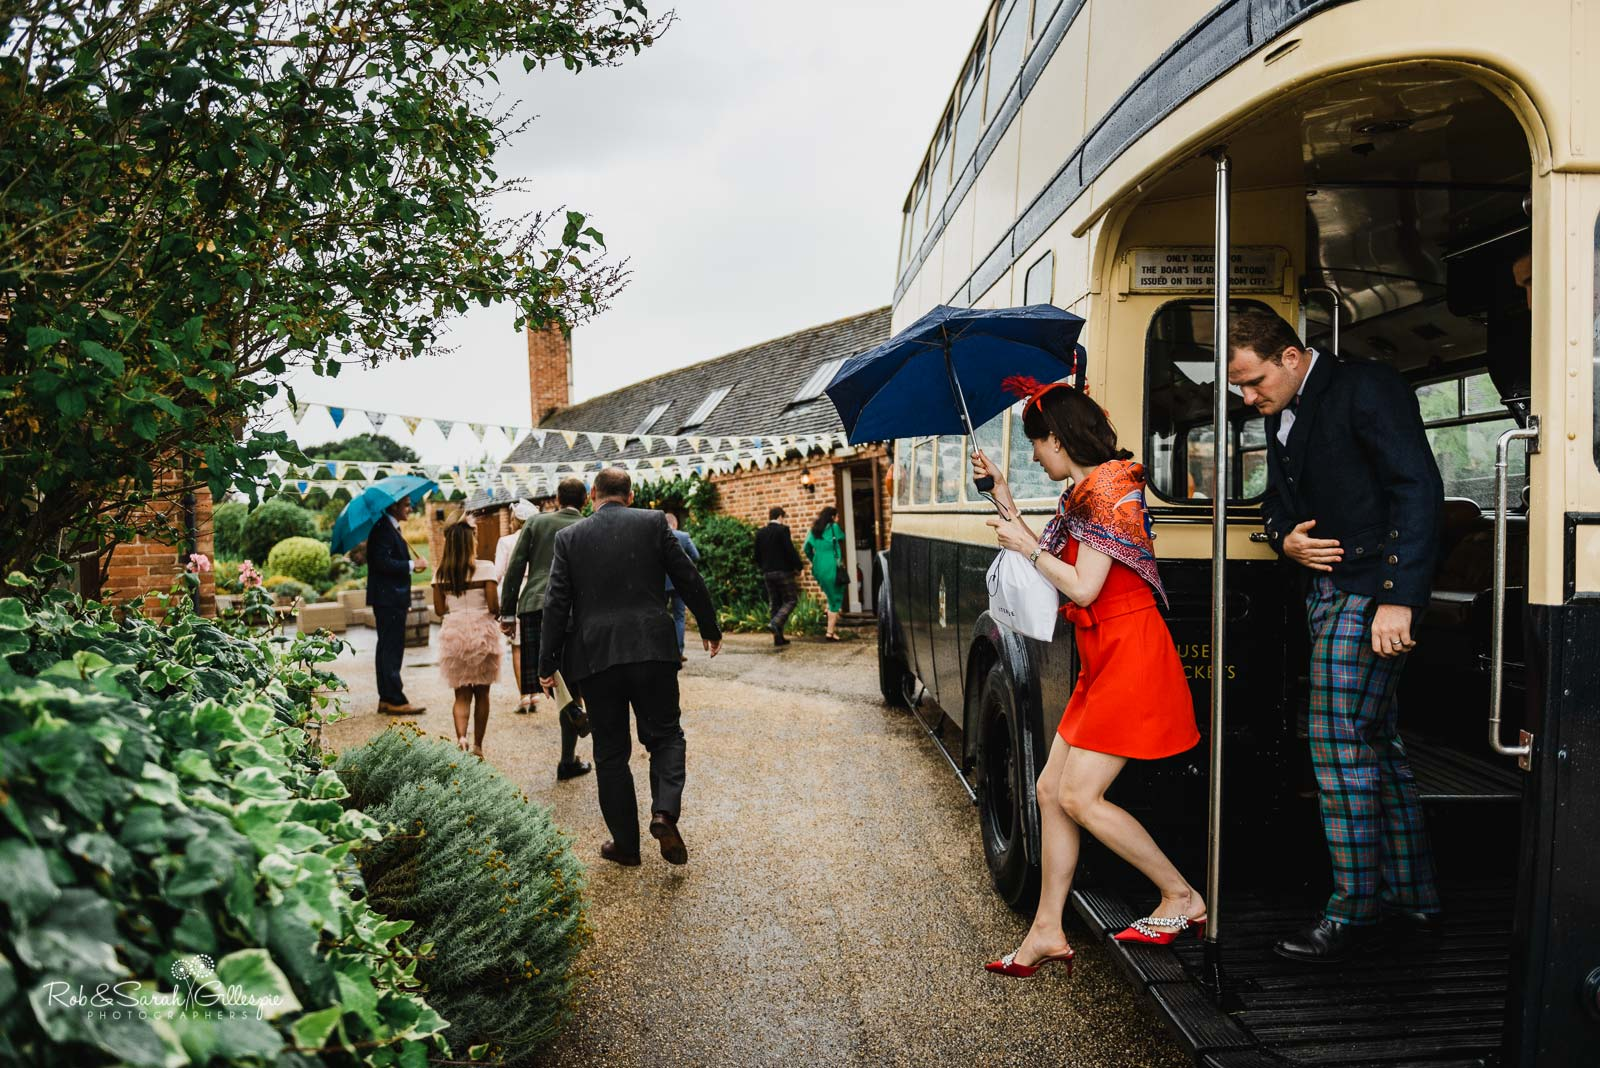 Wedding guests arrive on bus at Wethele Manor